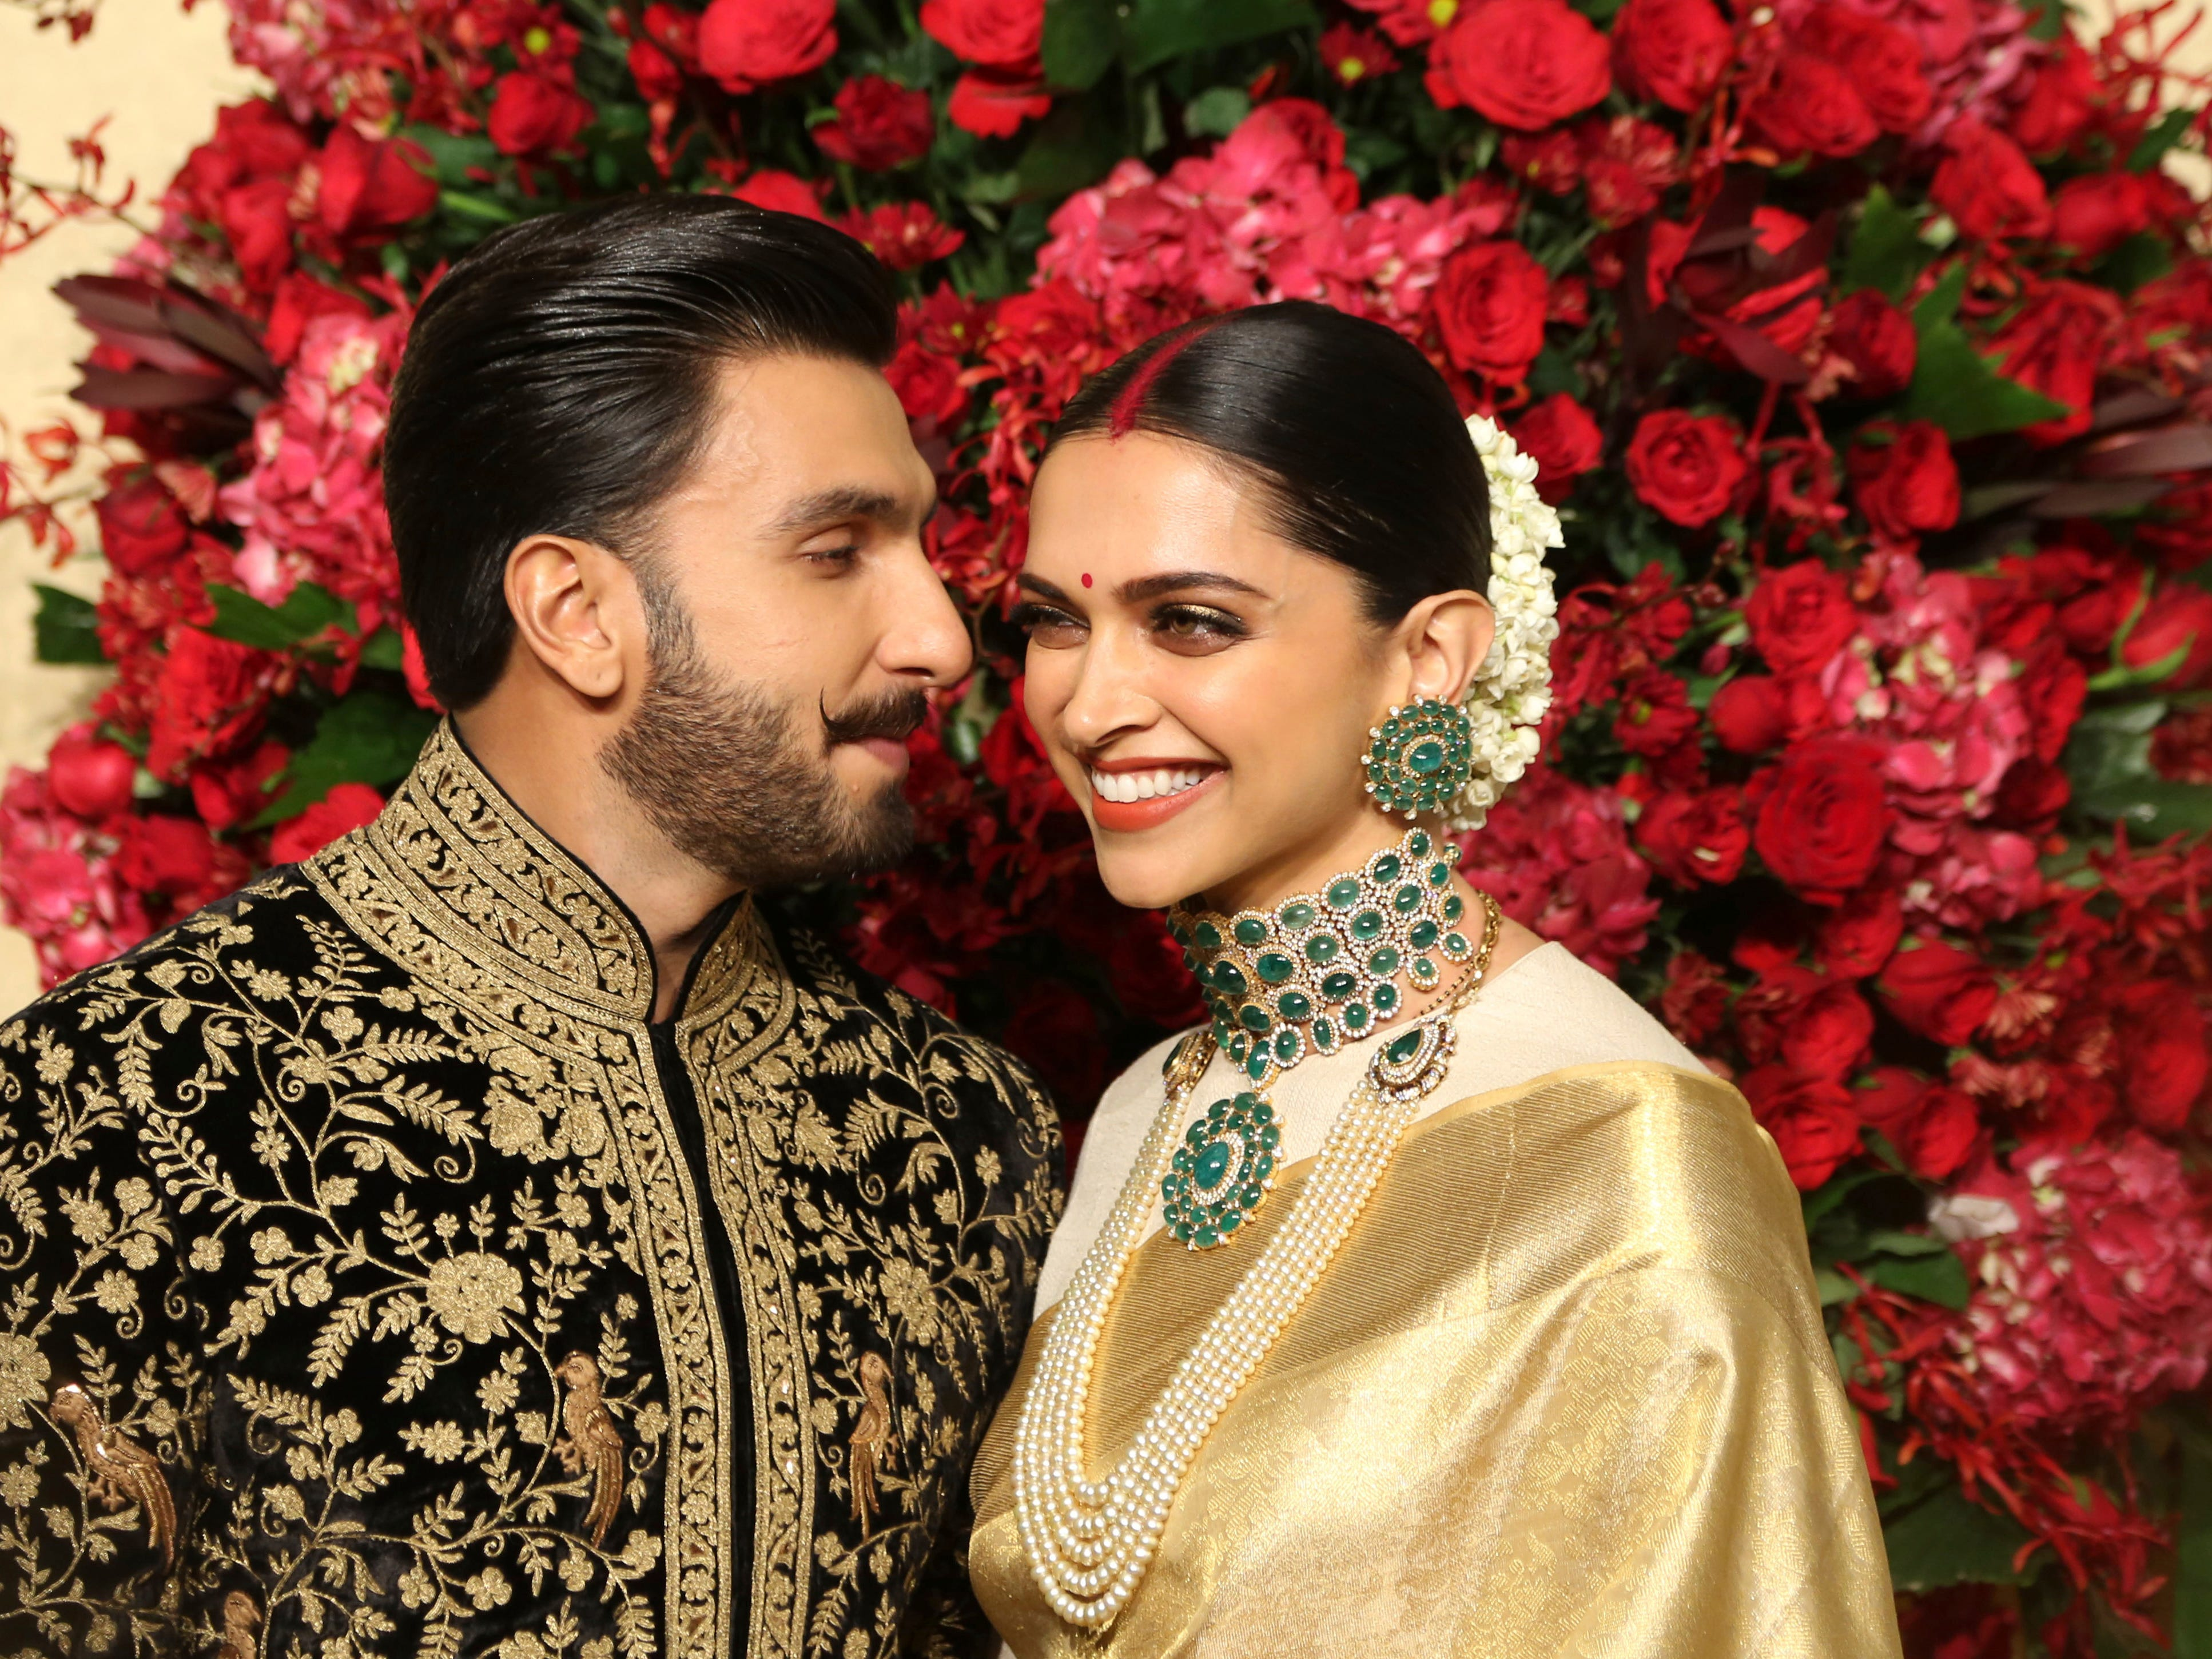 Bollywood actors Deepika Padukone, right, and Ranveer Singh pose at their wedding reception in Bangalore, India, Wednesday, Nov. 21, 2018. The couple got married at Villa Balbianello, a lakeside mansion featured in Star Wars and James Bond films in Lenno, Como lake, northern Italy on Nov. 14, 2018.